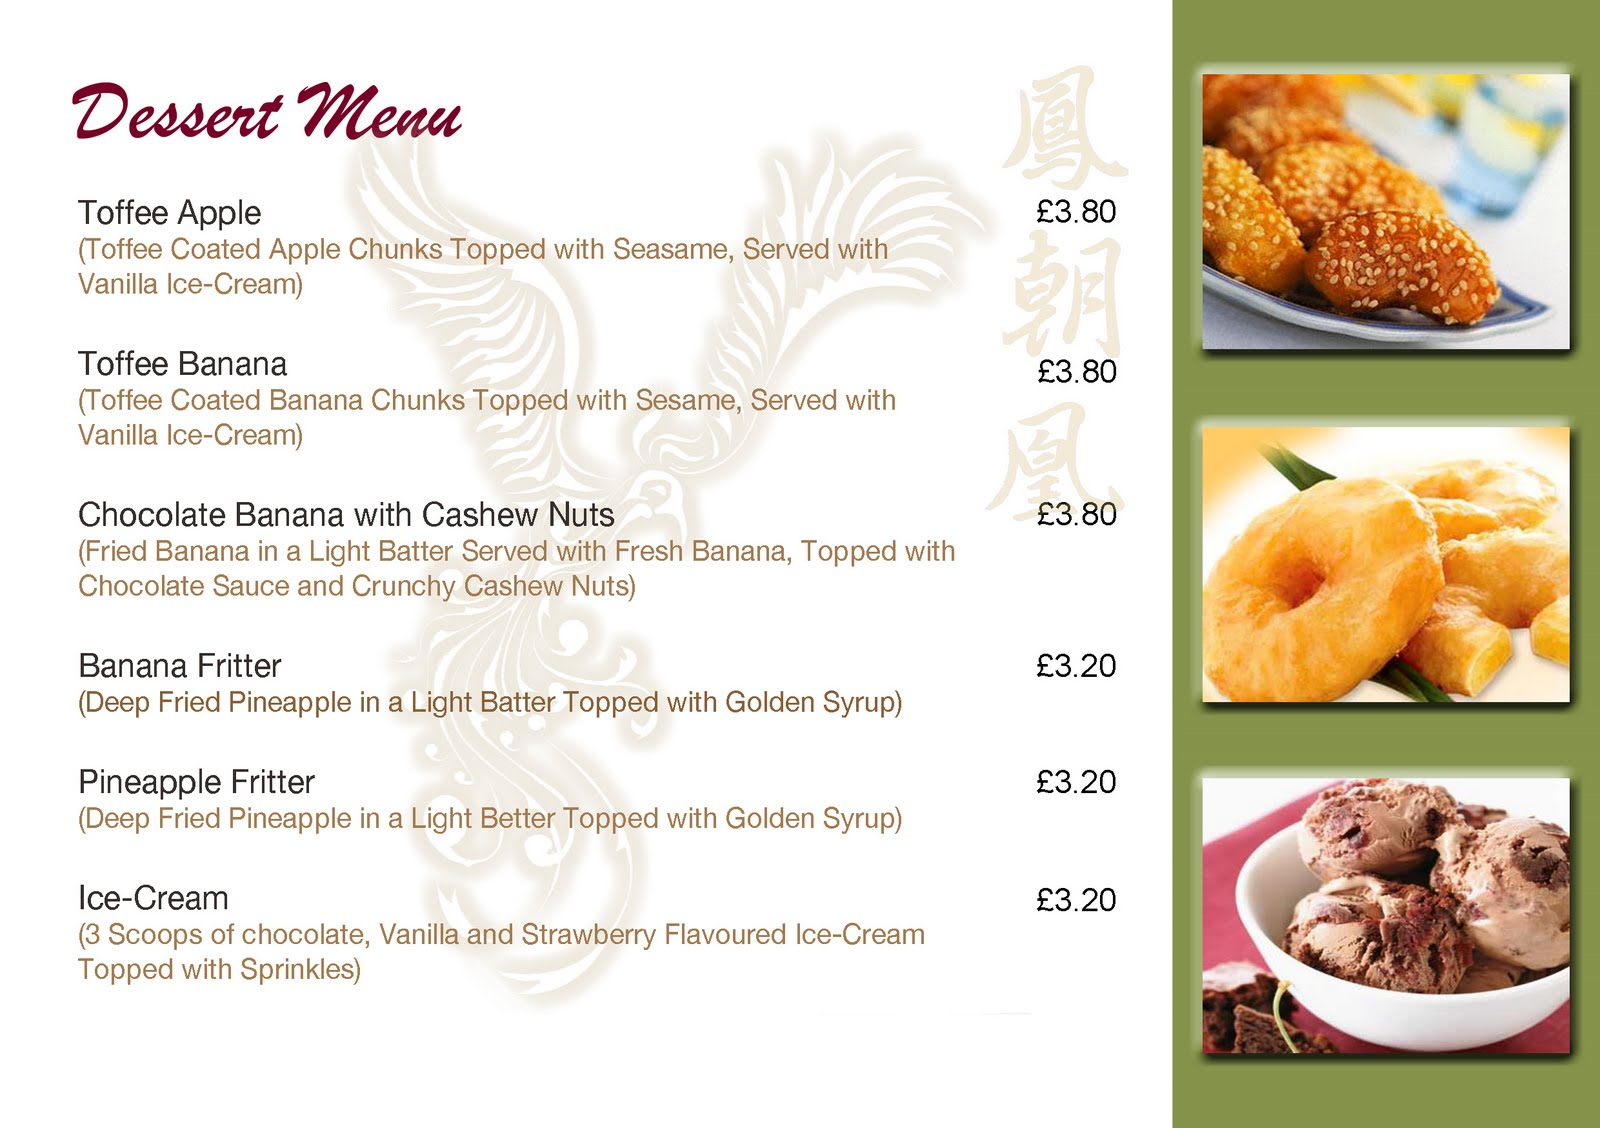 Phoenix ii chinese cuisine sheffield dessert menu for Asian cuisine desserts